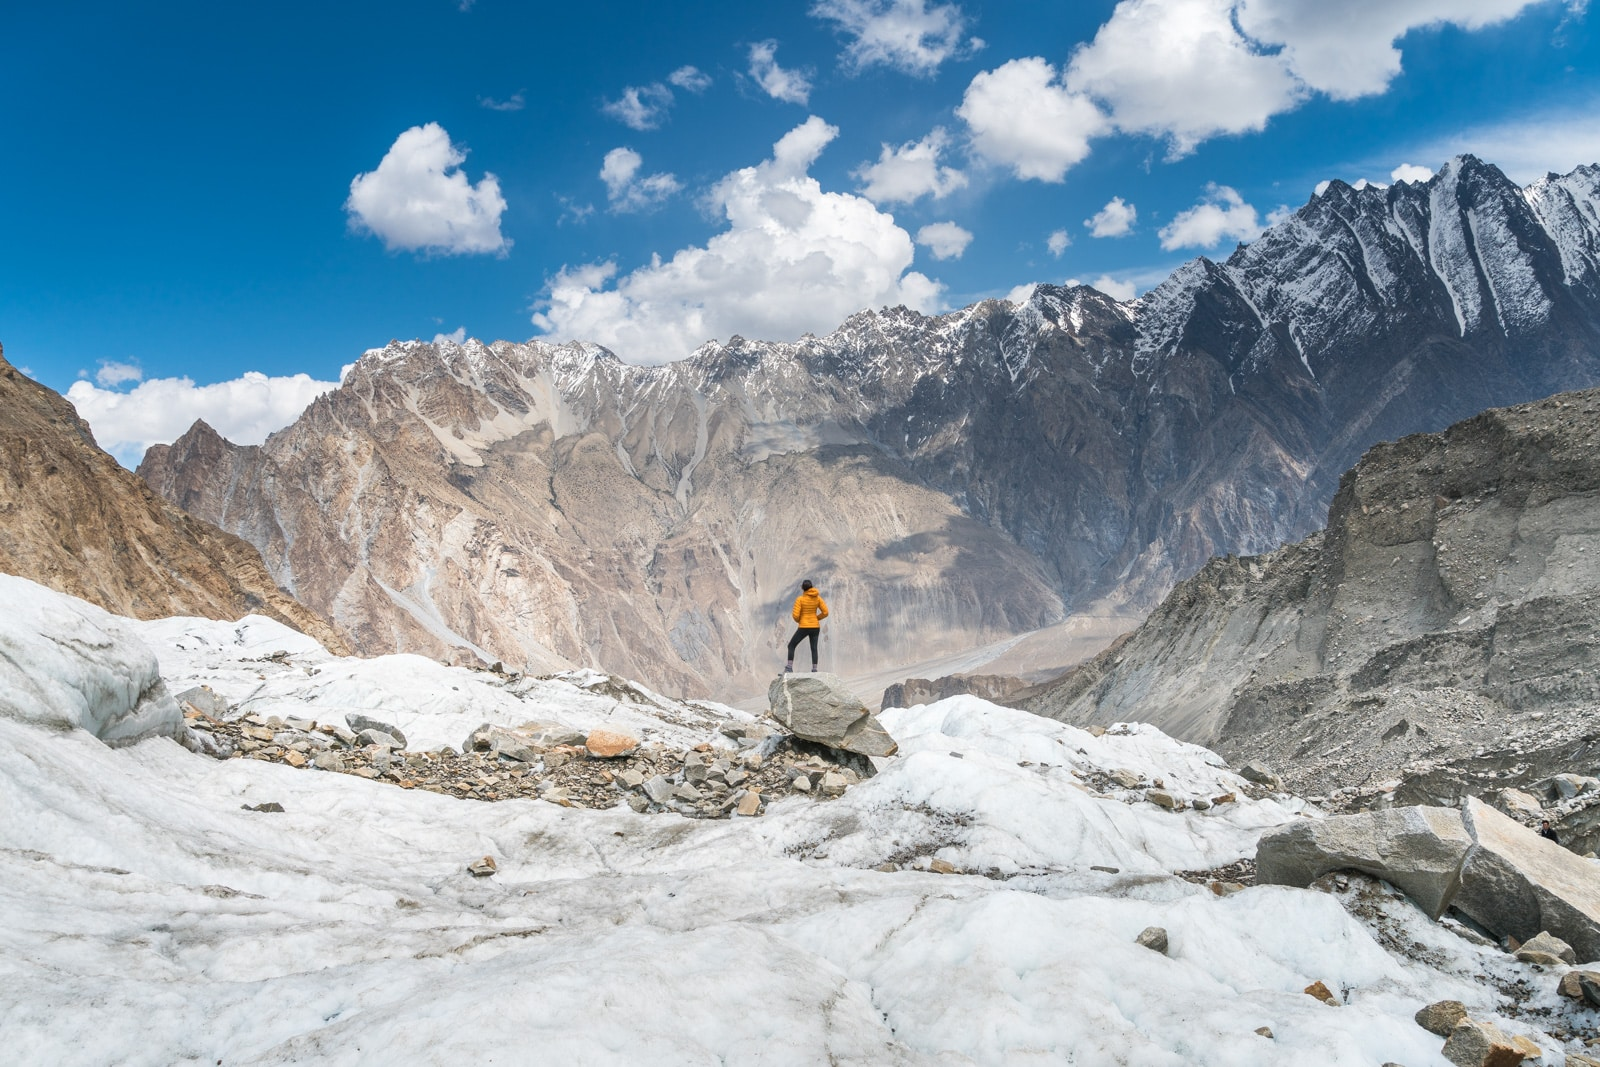 How I afford full-time travel - Looking out over the mountains of Gilgit Baltistan, Pakistan - Lost With Purpose travel blog